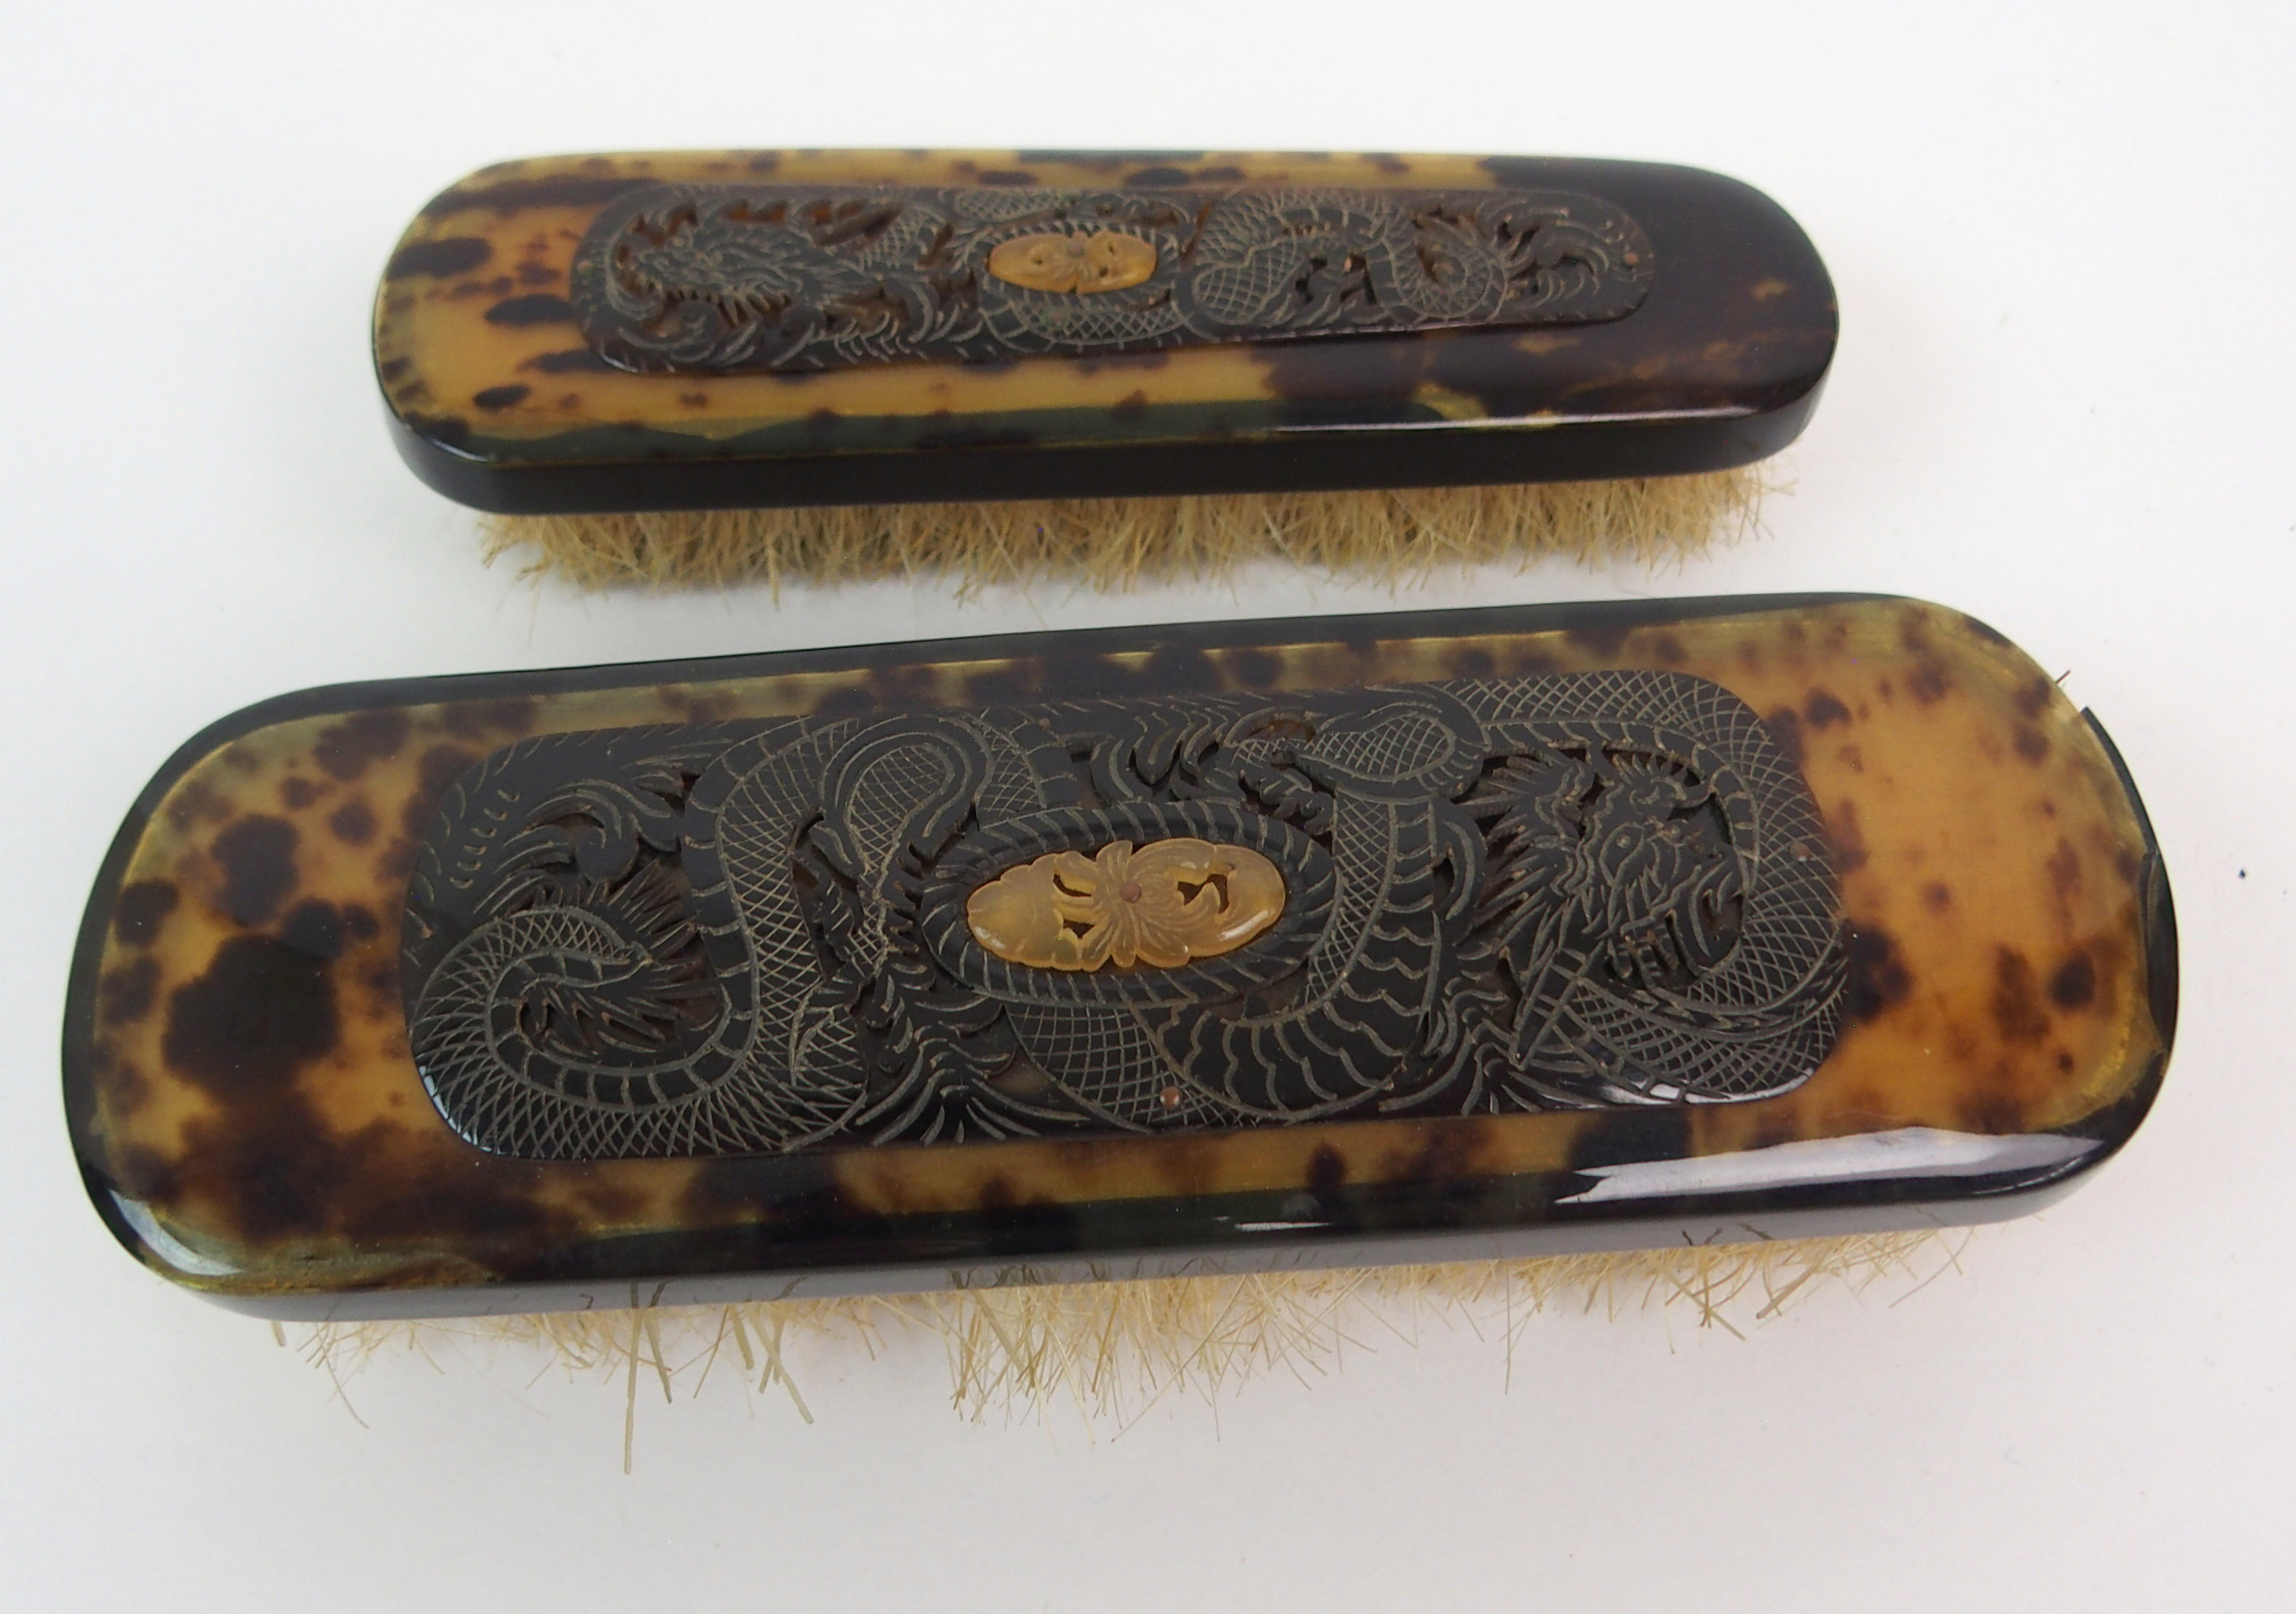 Lot 10 - A CHINESE TORTOISESHELL BRUSH SET comprising; hand mirror, clothes brushes, hair brushes, button